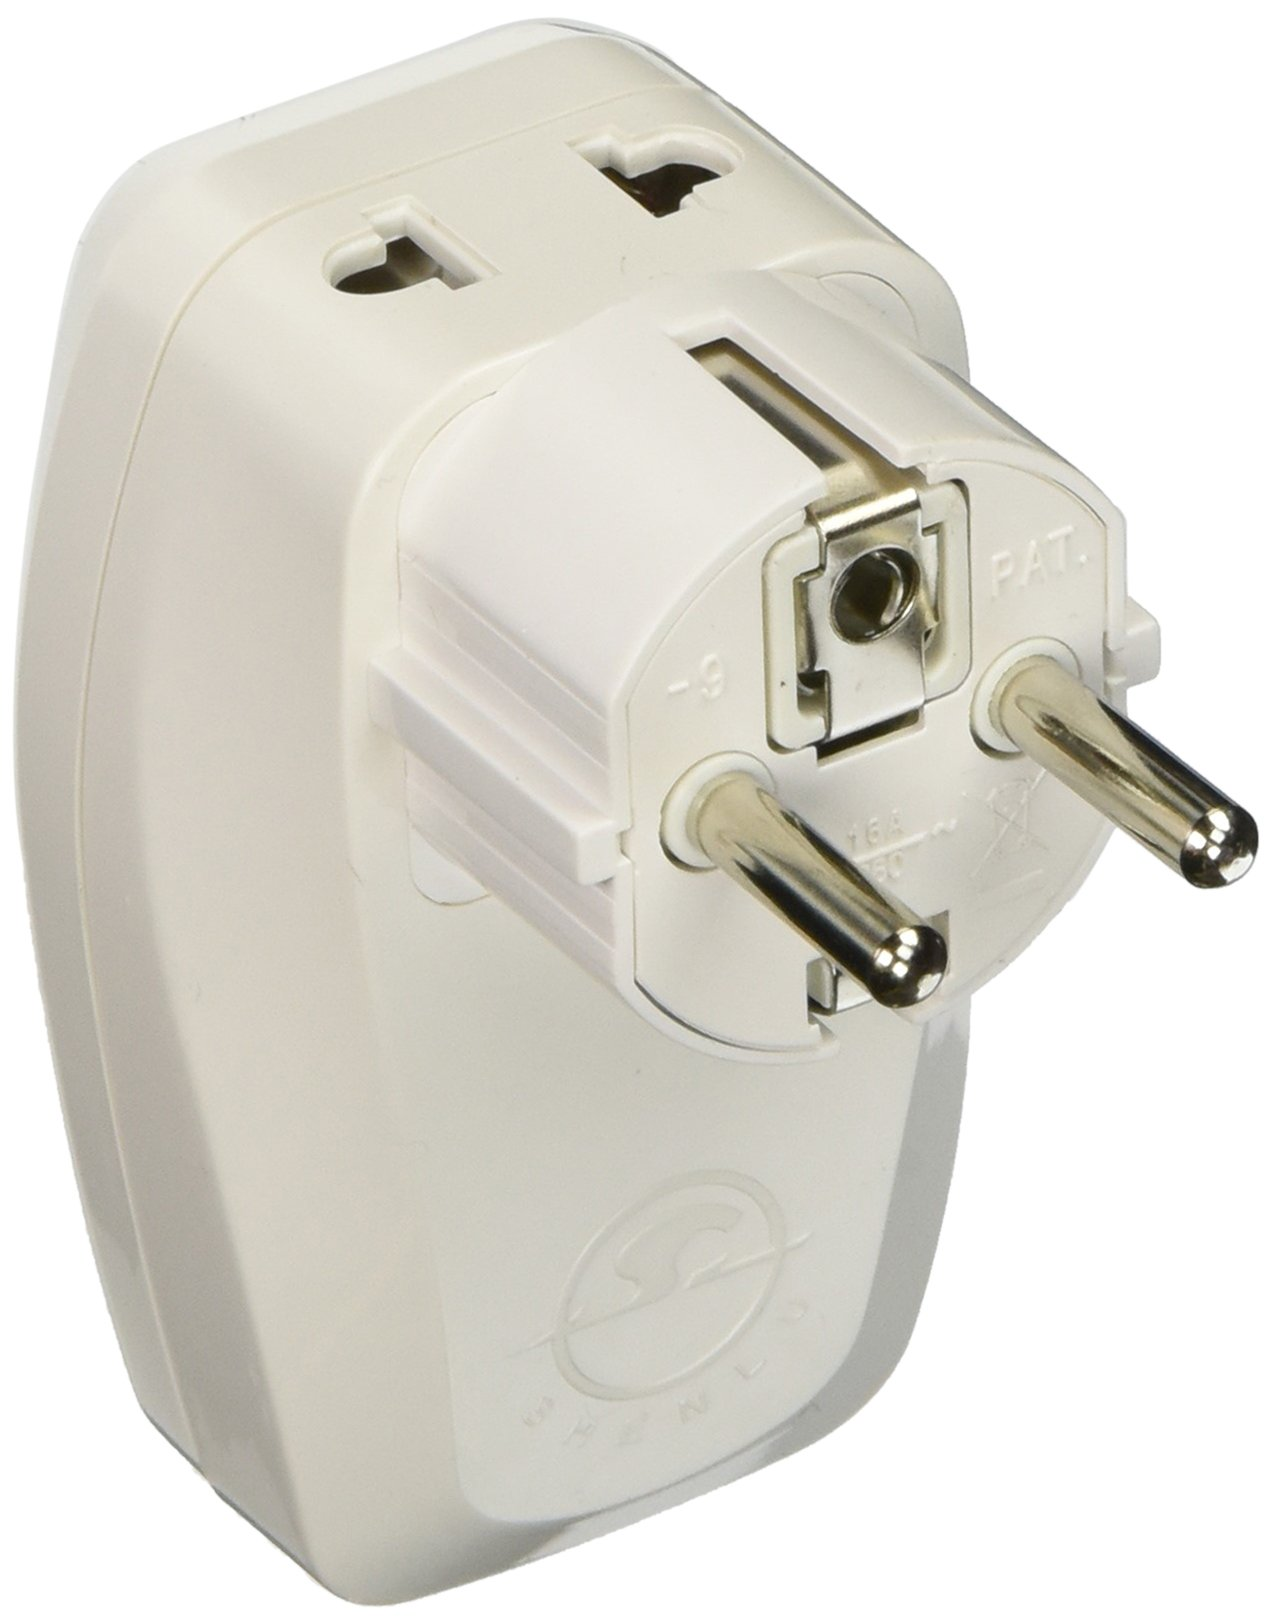 Cheap Plug Adapter For France Find Deals On Wiring A French 3 Pin Get Quotations Orei In 1 Schuko Travel With Usb And Surge Protection Grounded Type